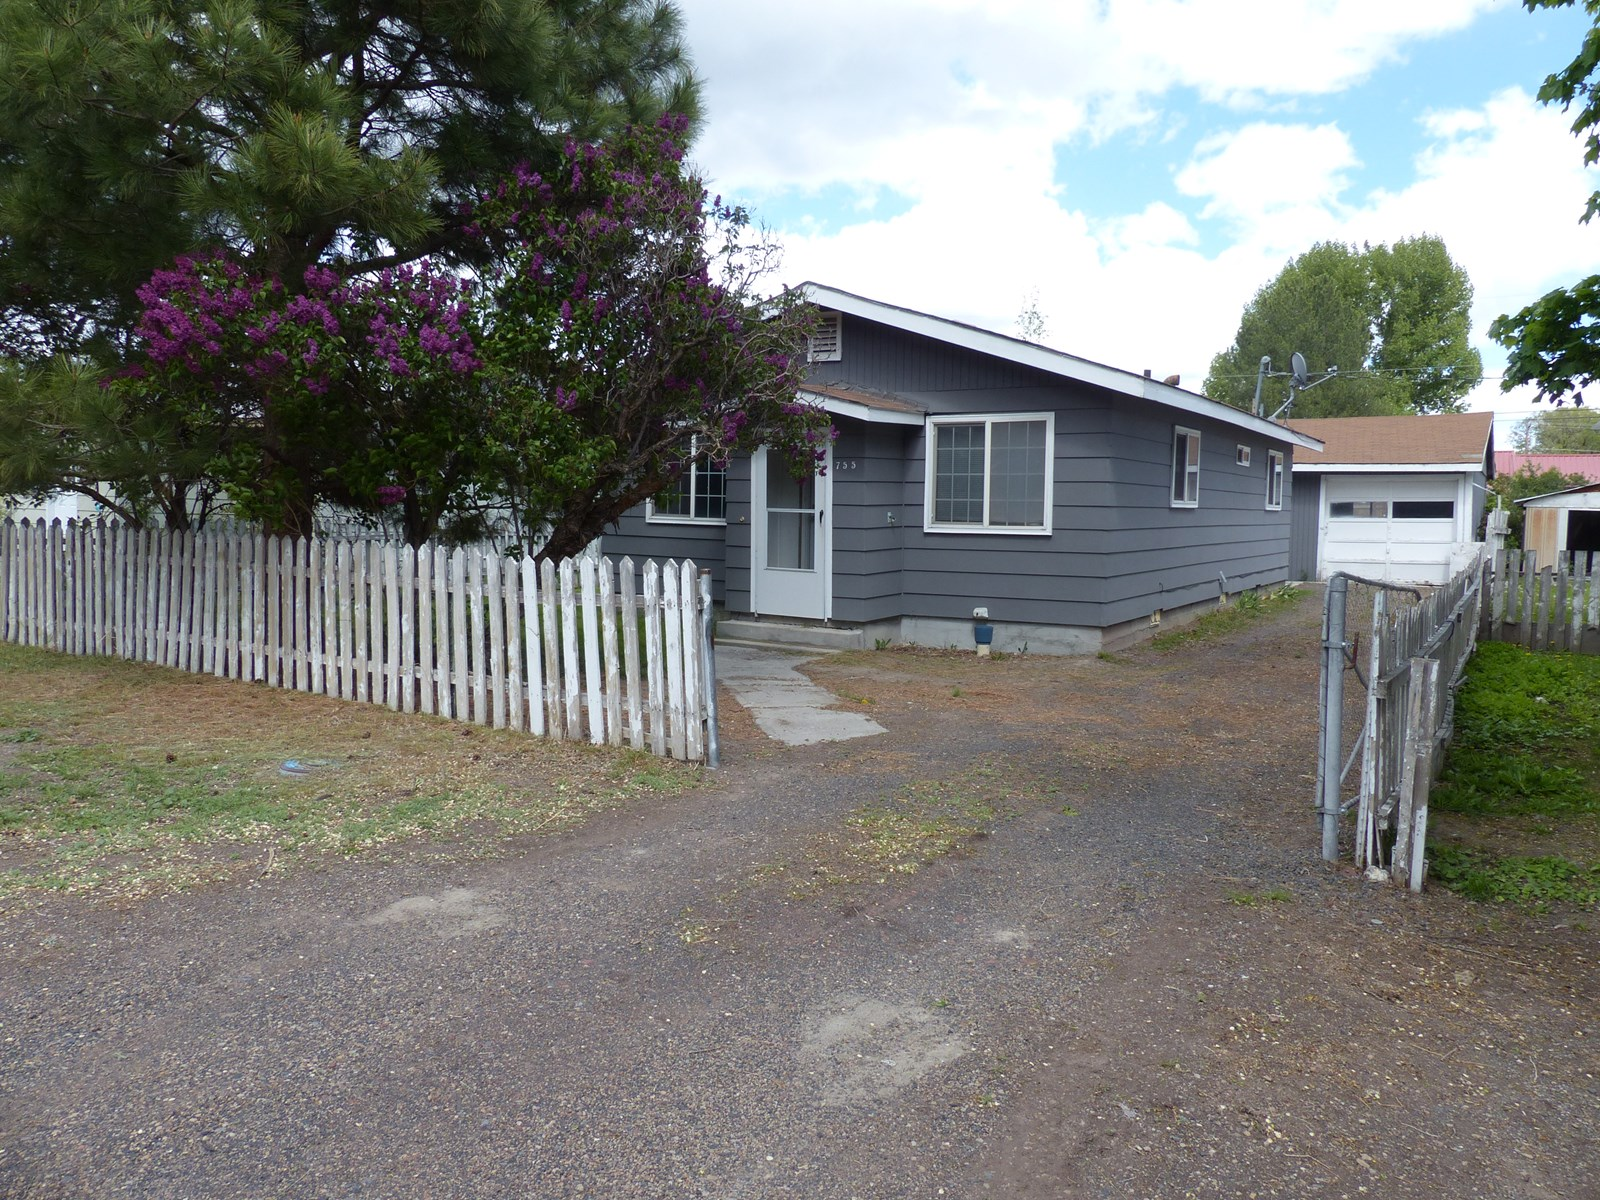 UPGRADED HOME IN BURNS FOR SALE - MOVE IN READY!